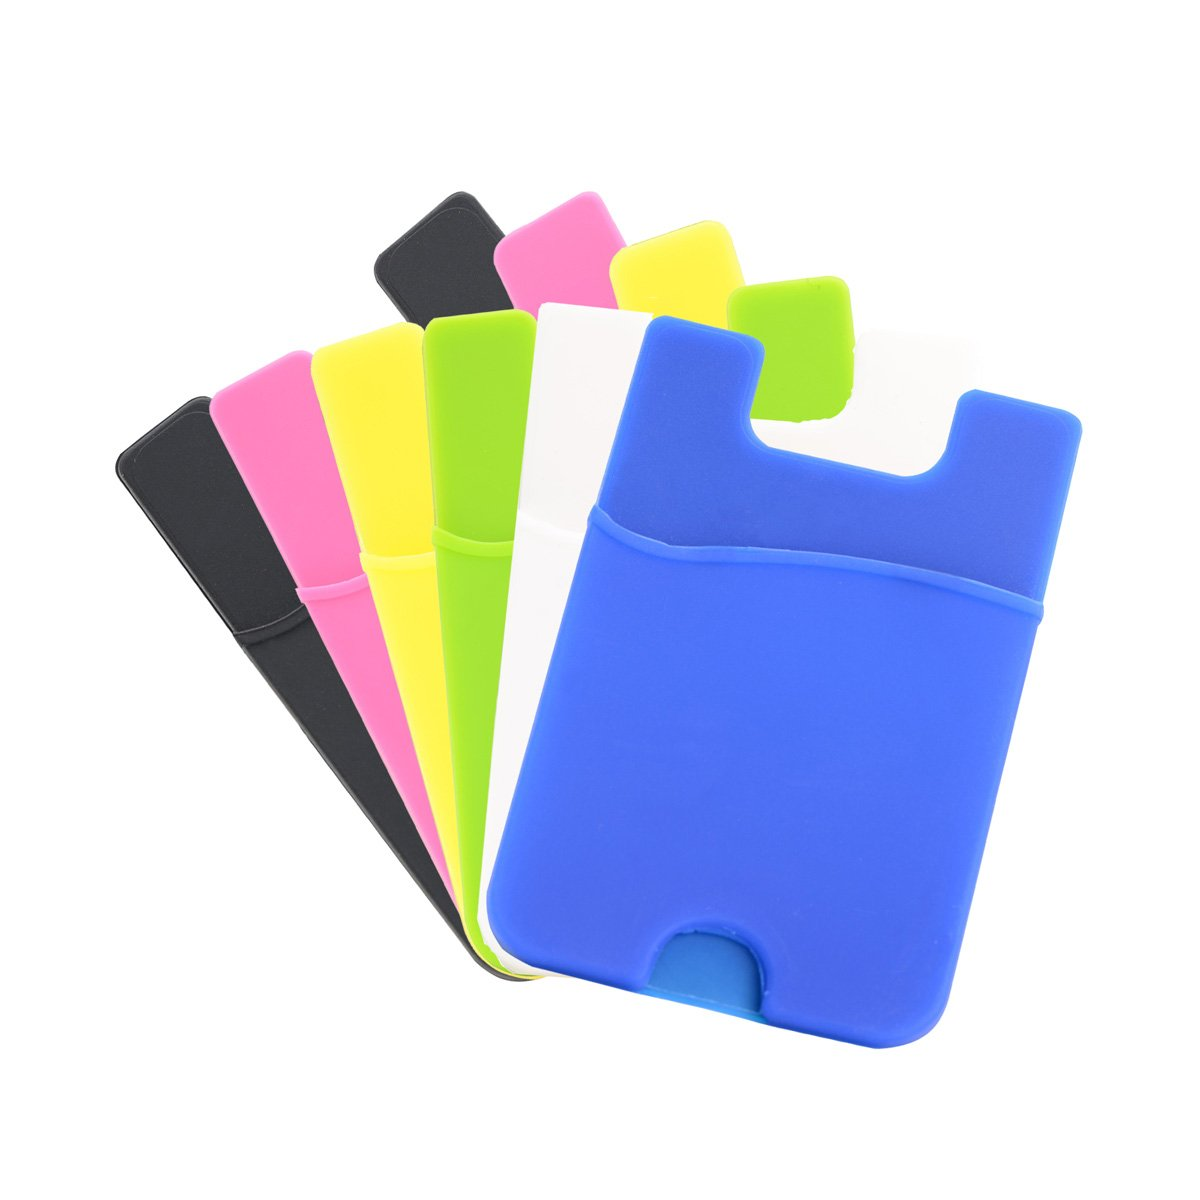 Chanroy--Silicone Credit Card Holder / ID Card Holder / Pouch Sleeve Holder for all phones.Fits on the backside of the phone (iPhone / Samsung Galaxy / Sony Eriksson / LG) (6 Pack Multicolor)